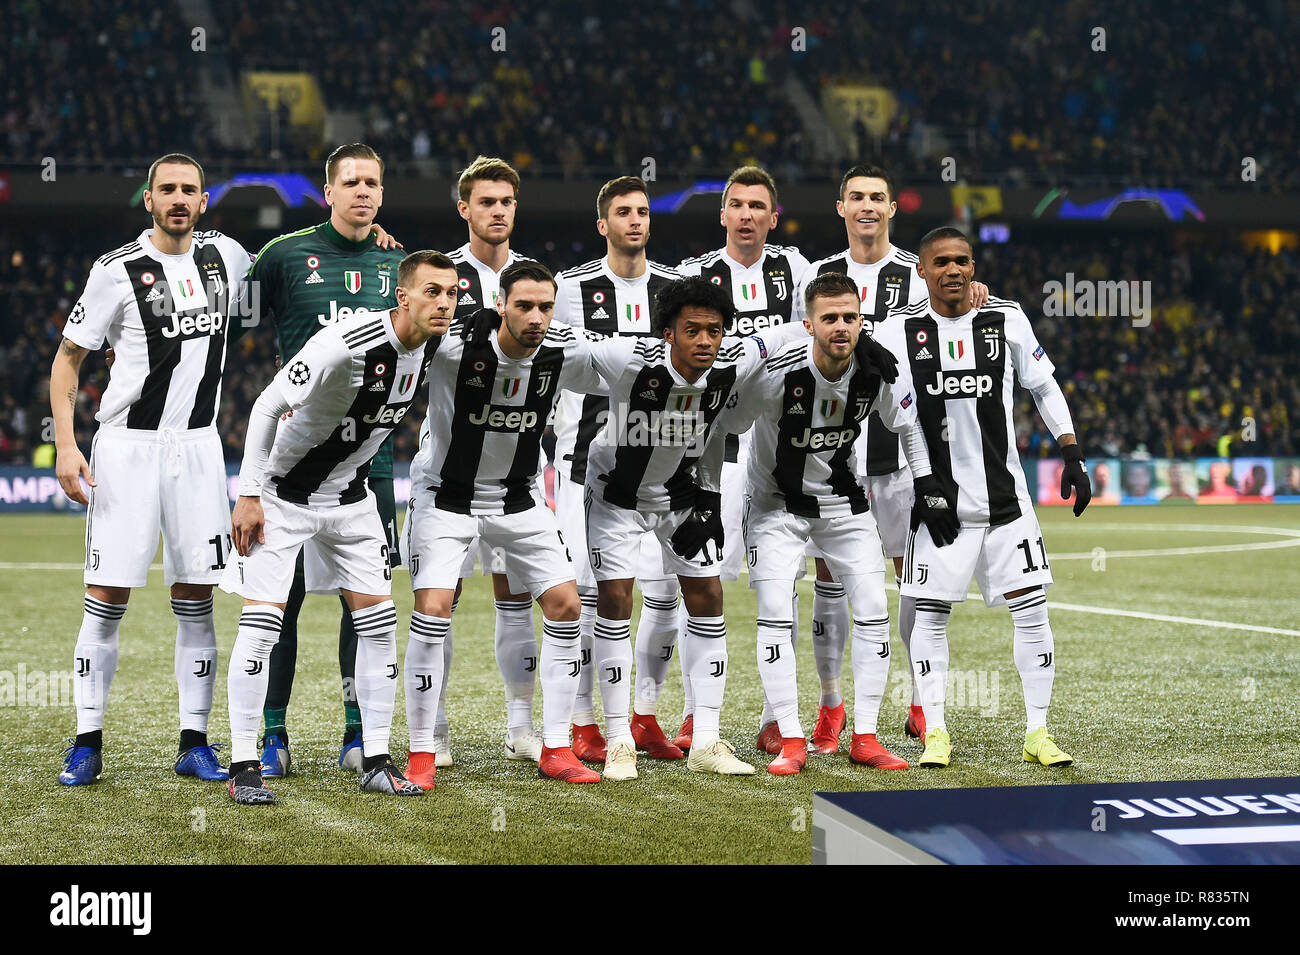 Formazione Juventus High Resolution Stock Photography and Images ...